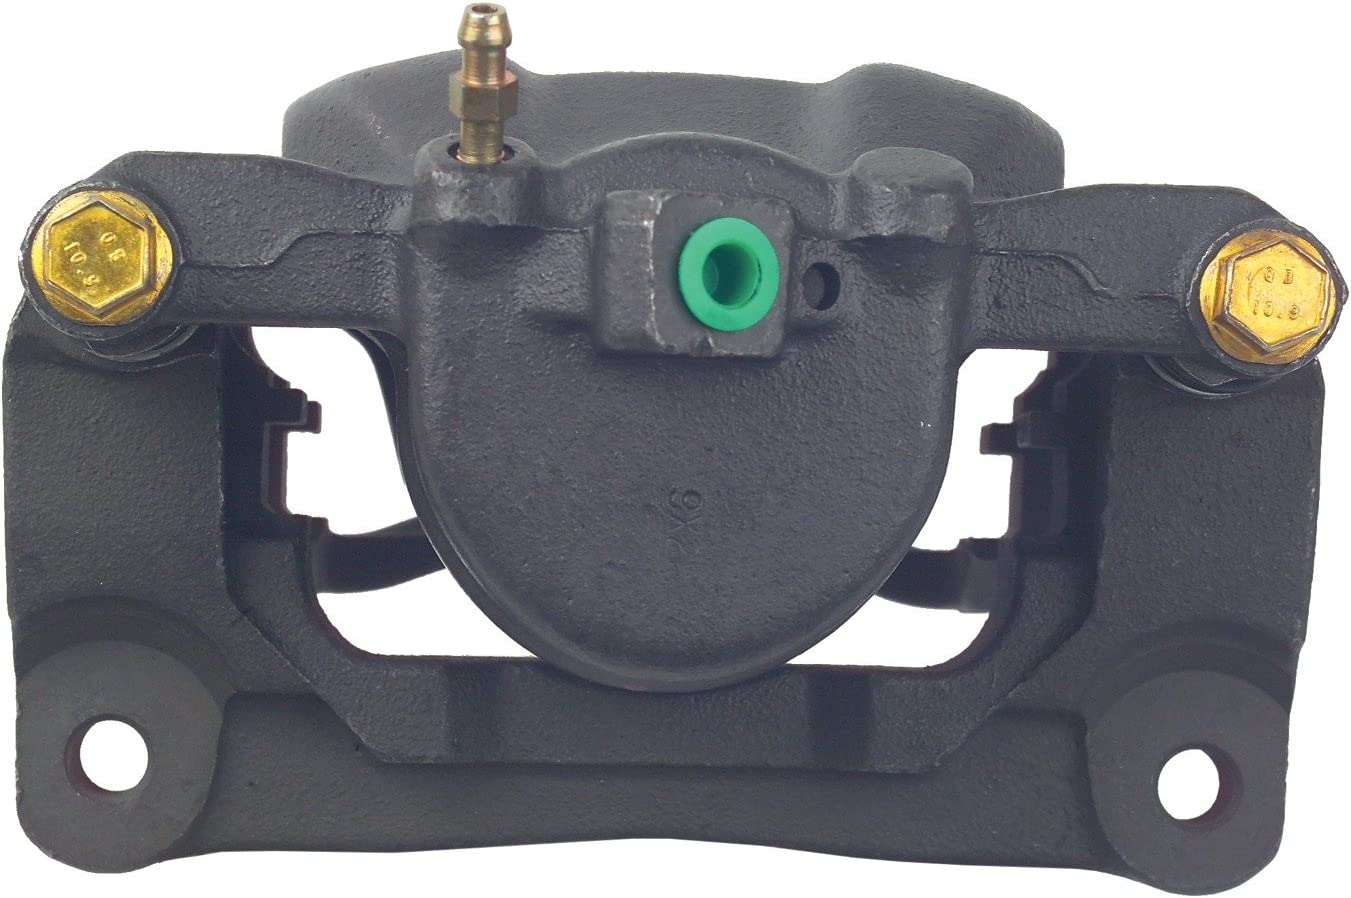 Unloaded Brake Caliper Cardone 19-B2974 Remanufactured Import Friction Ready